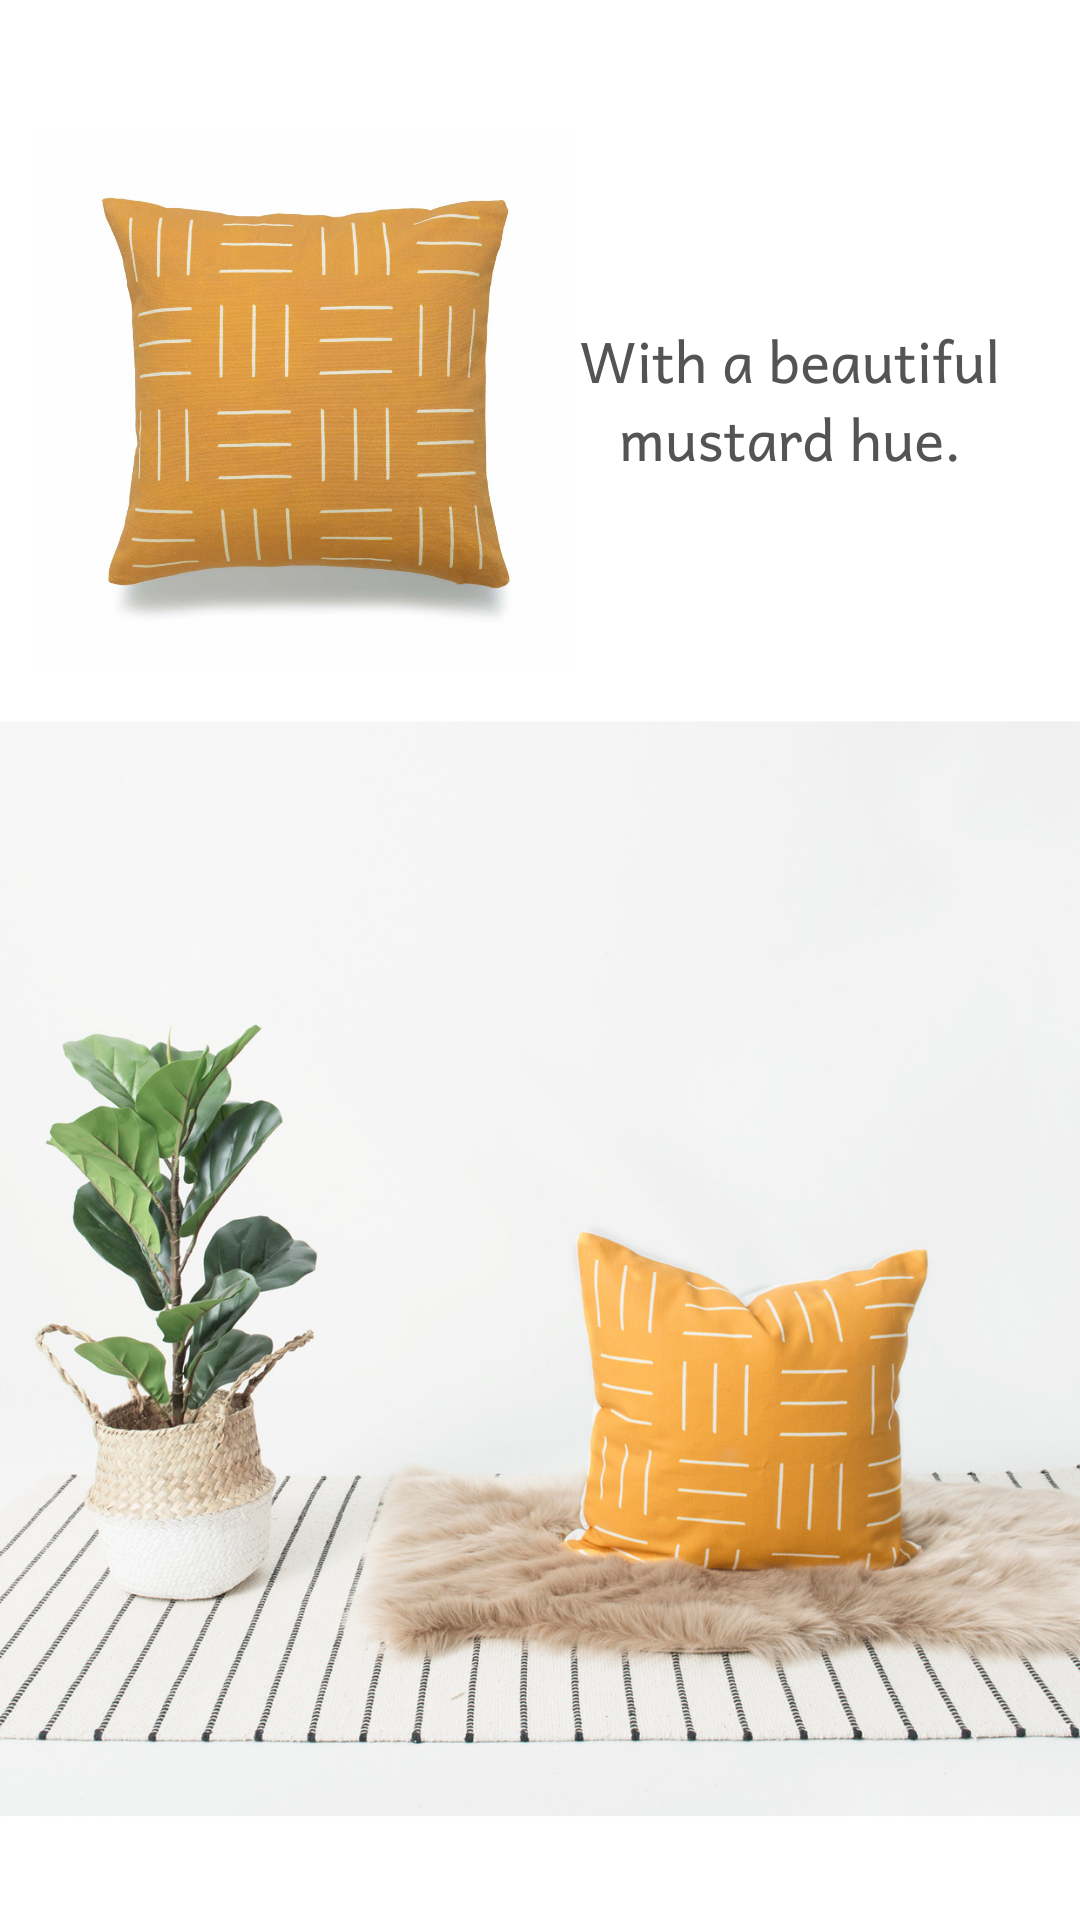 Hofdeco African Mud Cloth Pillow - Mustard